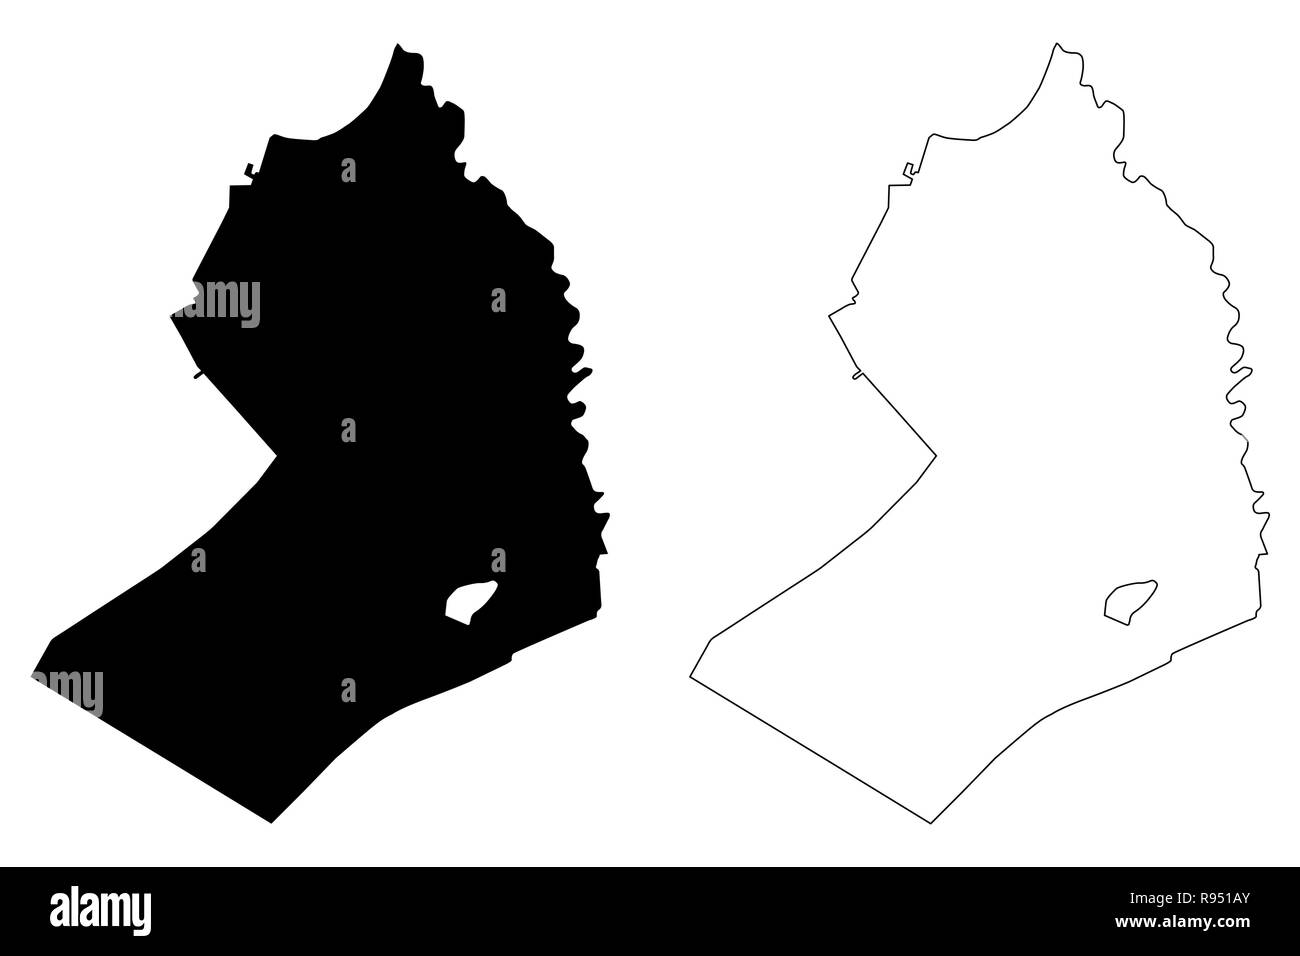 Beheira Governorate (Governorates of Egypt, Arab Republic of Egypt) map vector illustration, scribble sketch Beheira map - Stock Image